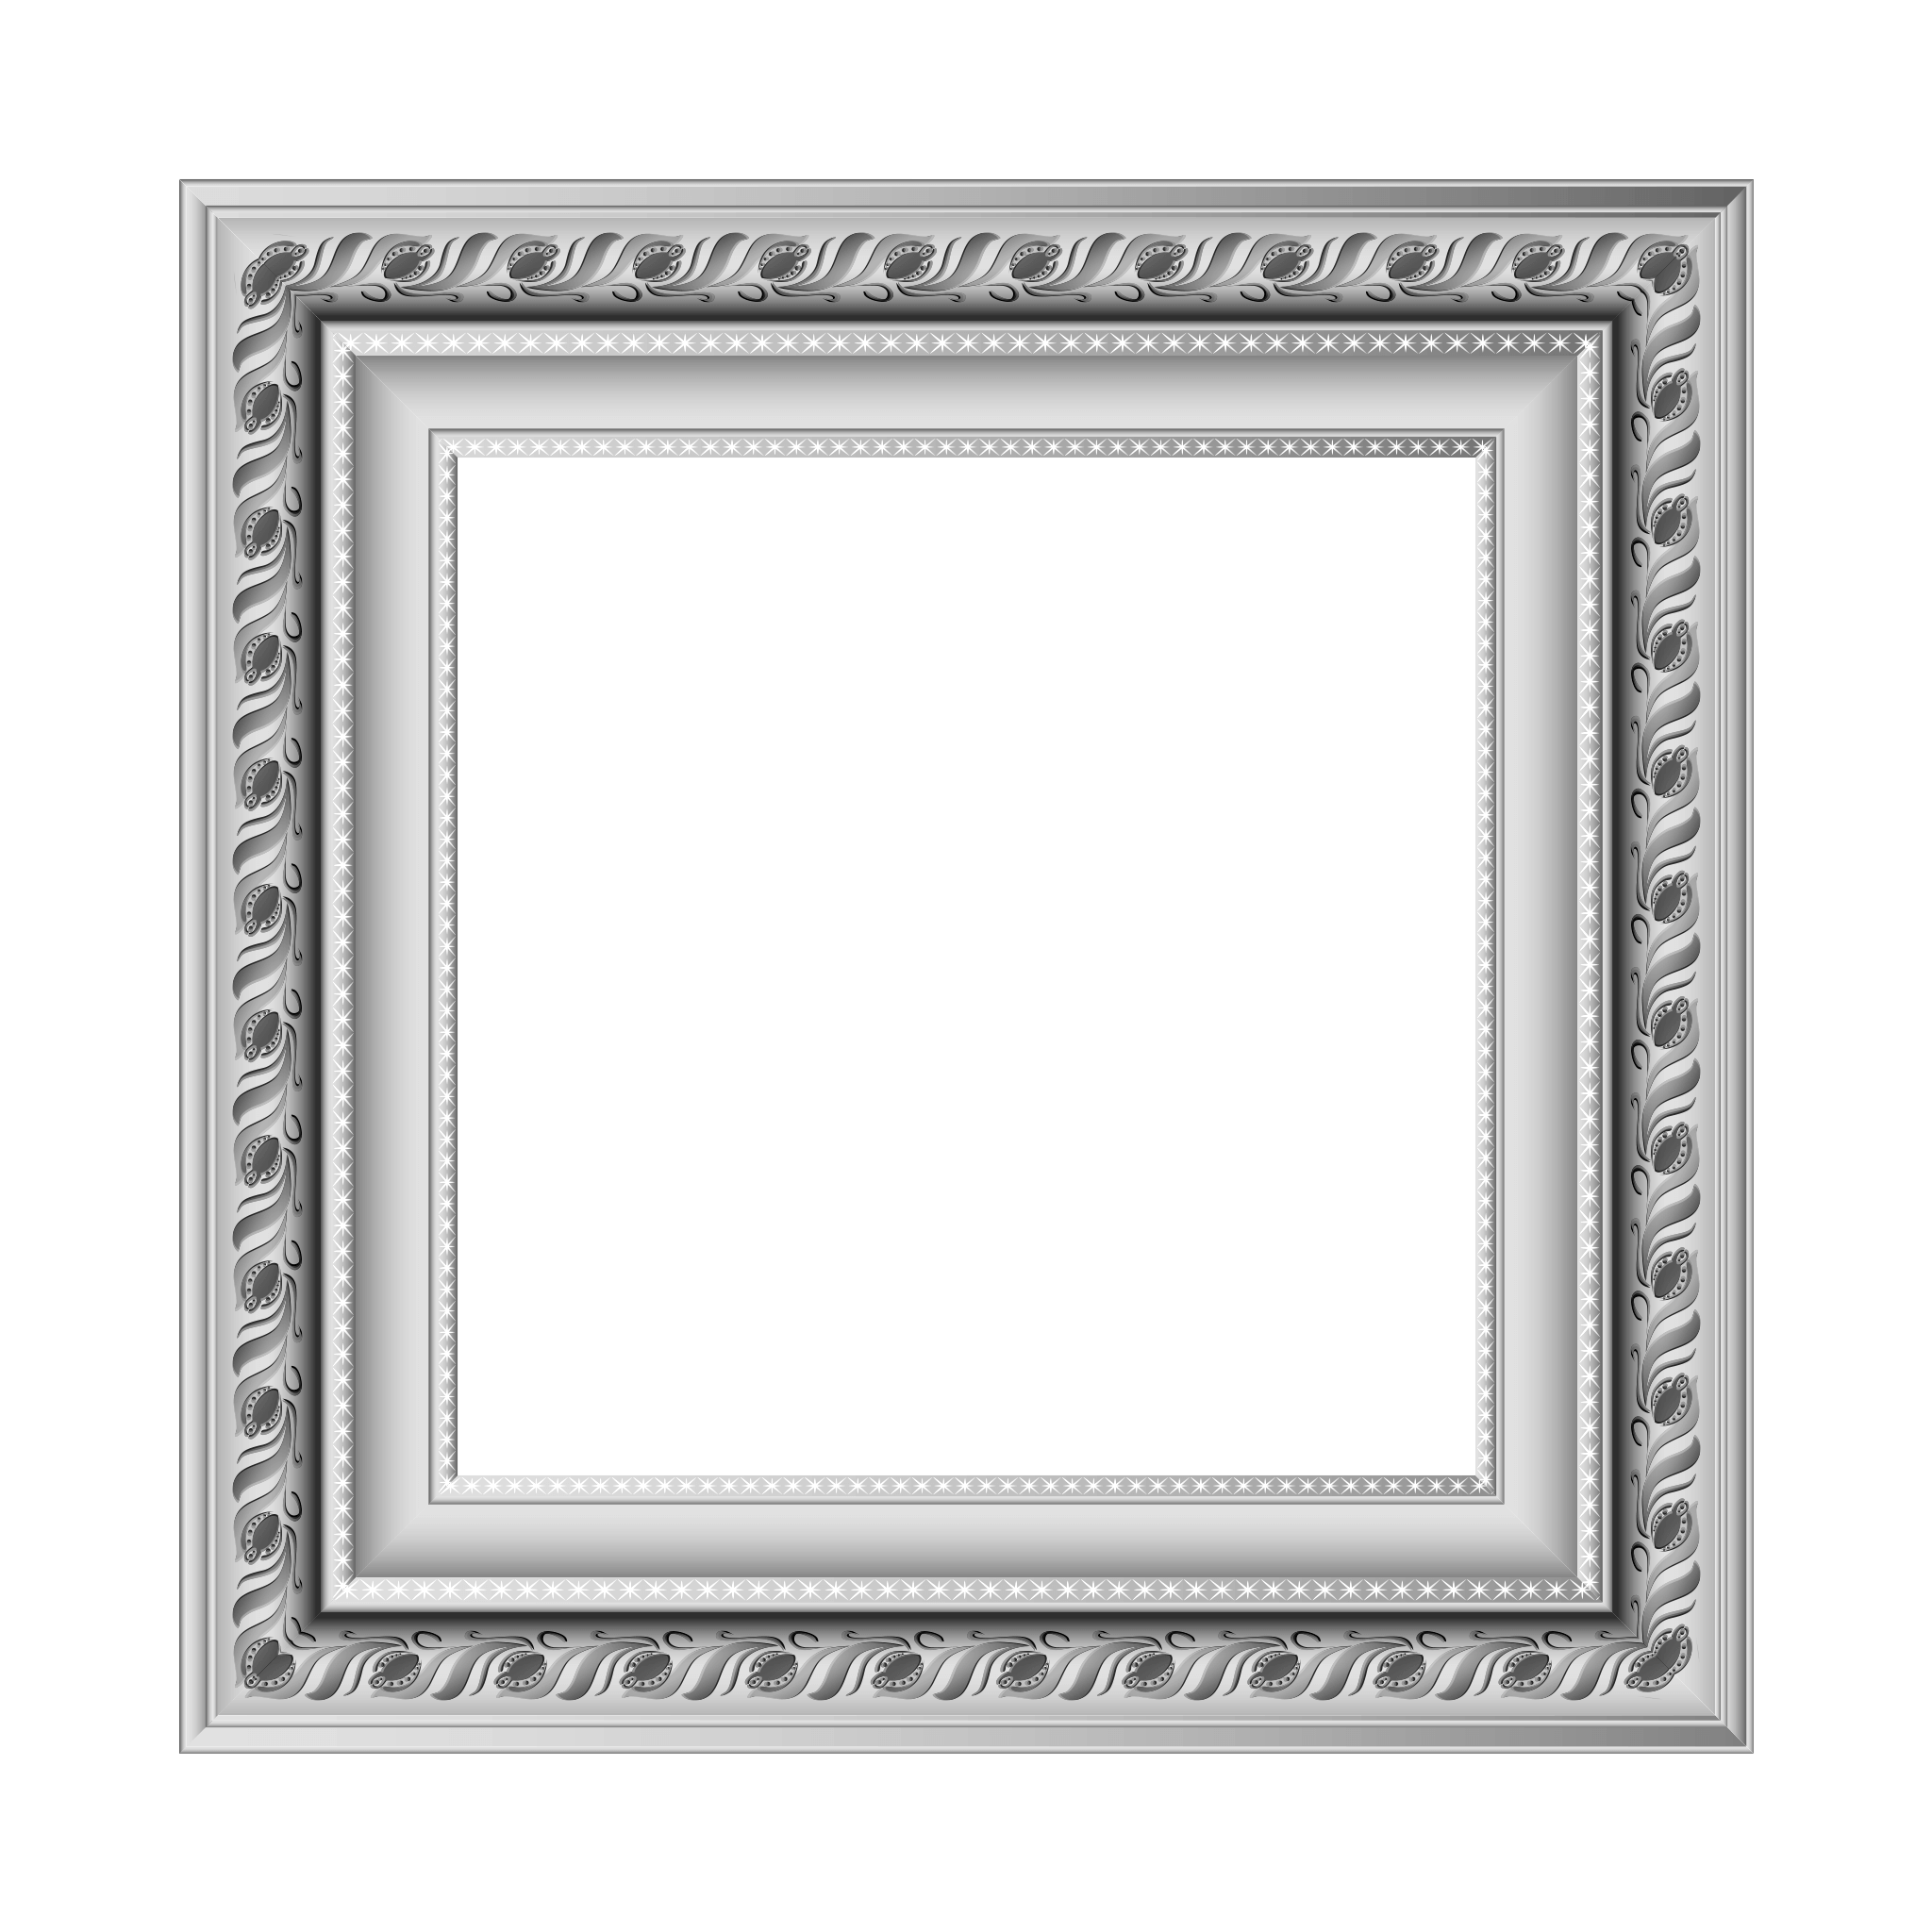 Square Frame PNG Image Free Download searchpng.com.